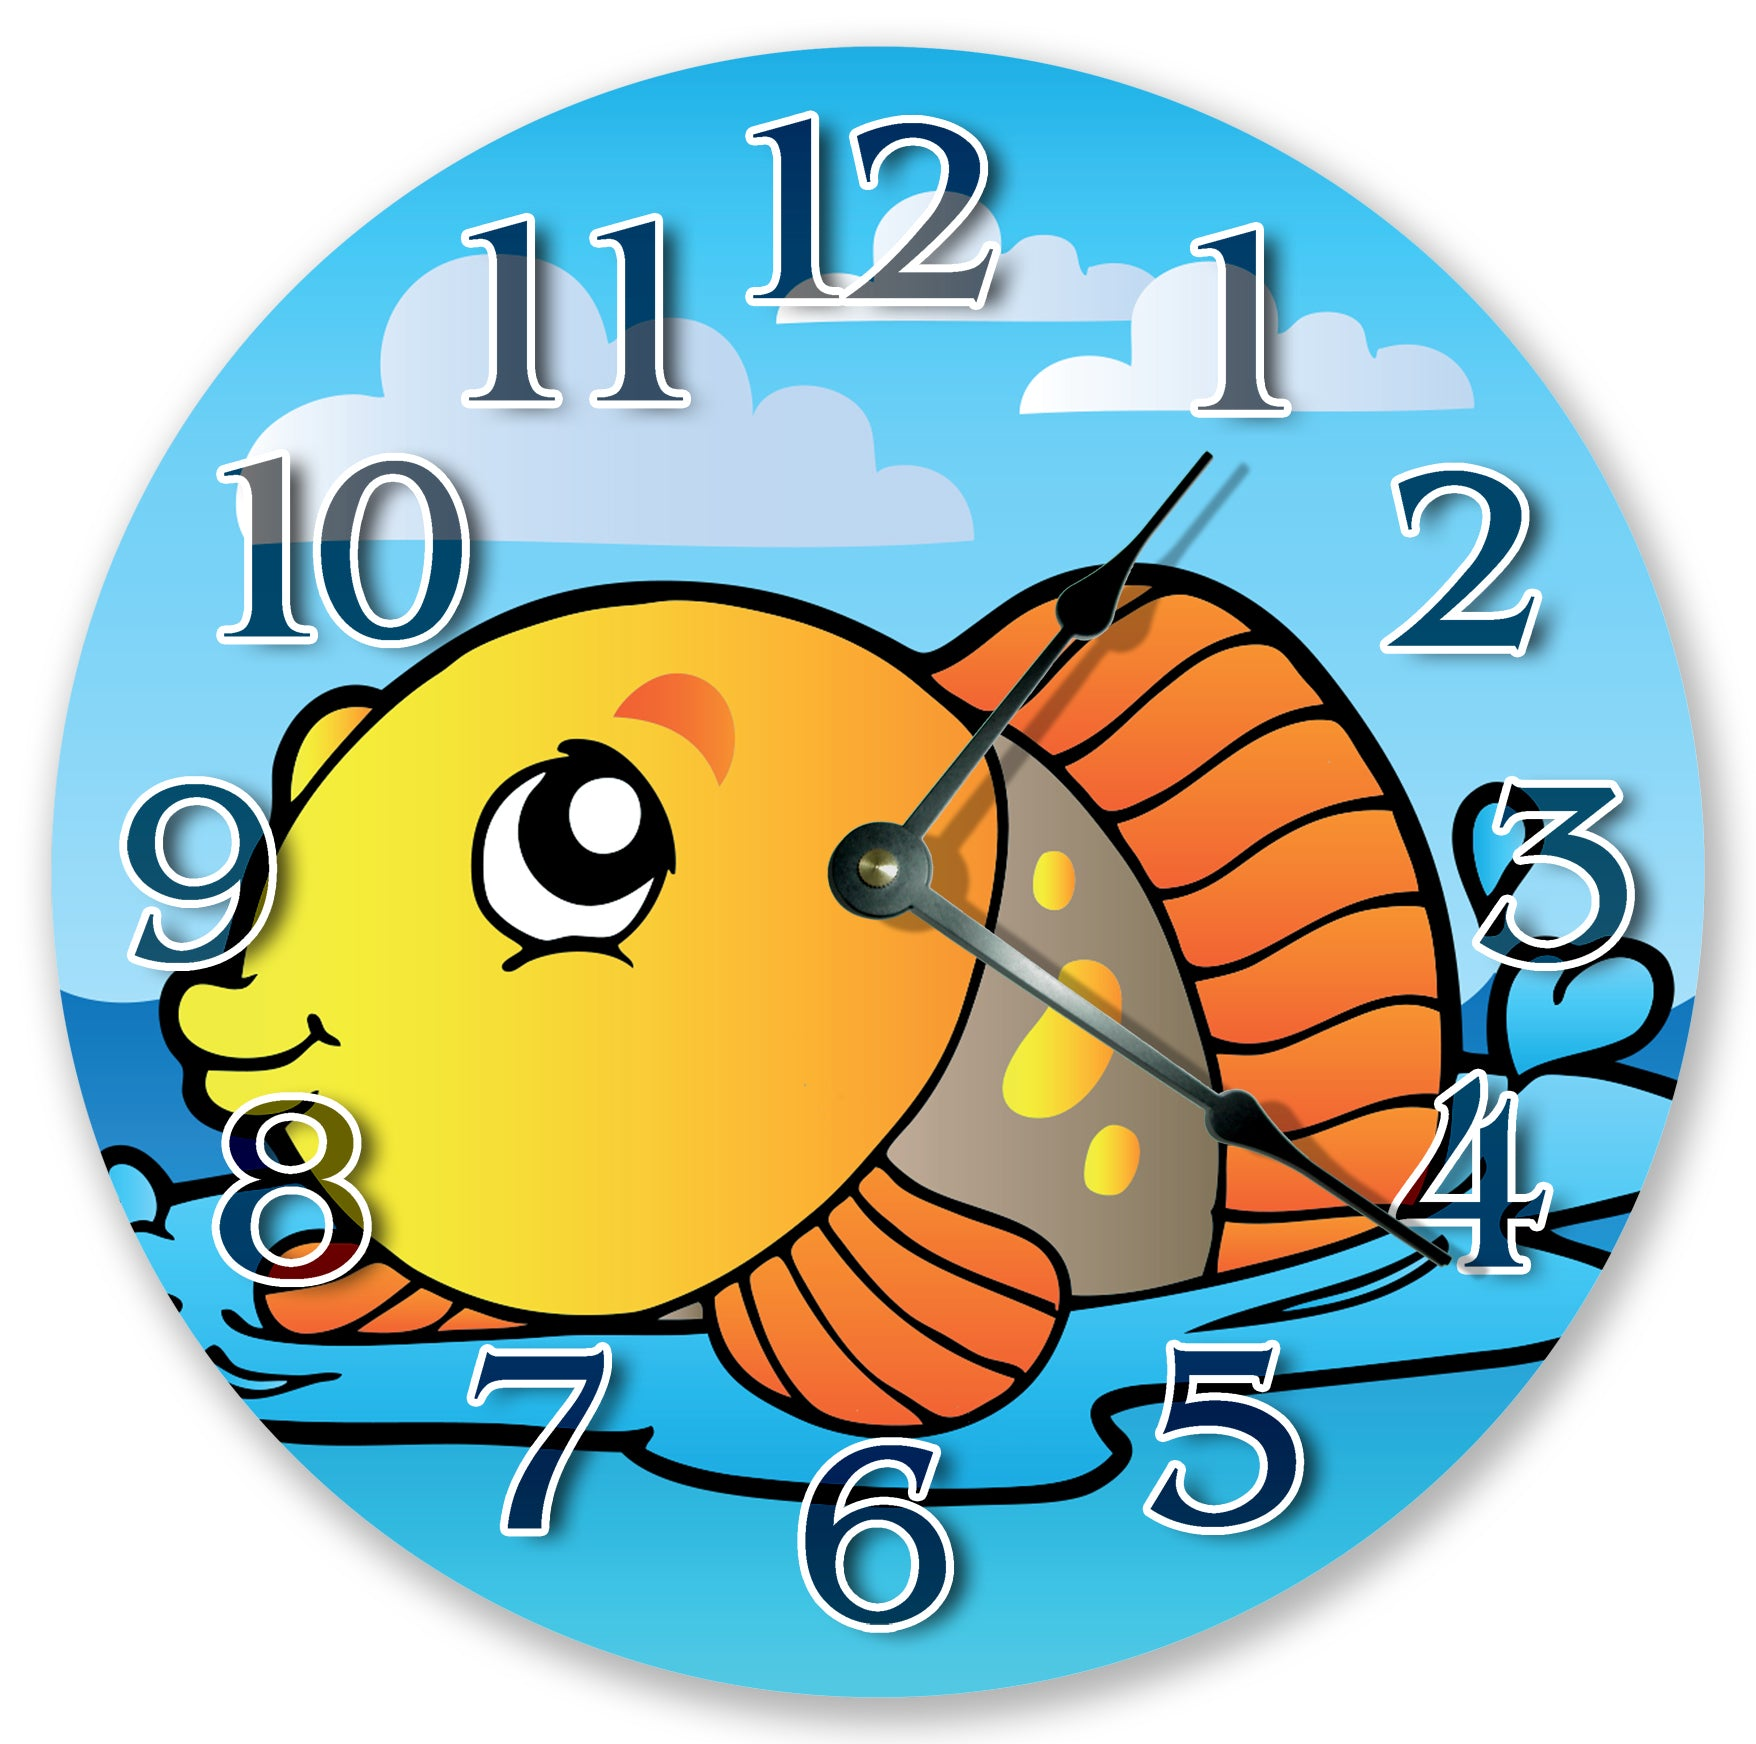 Ocean Creatures Cute Gold Fish Nursery Kids Hanging Wall Clock